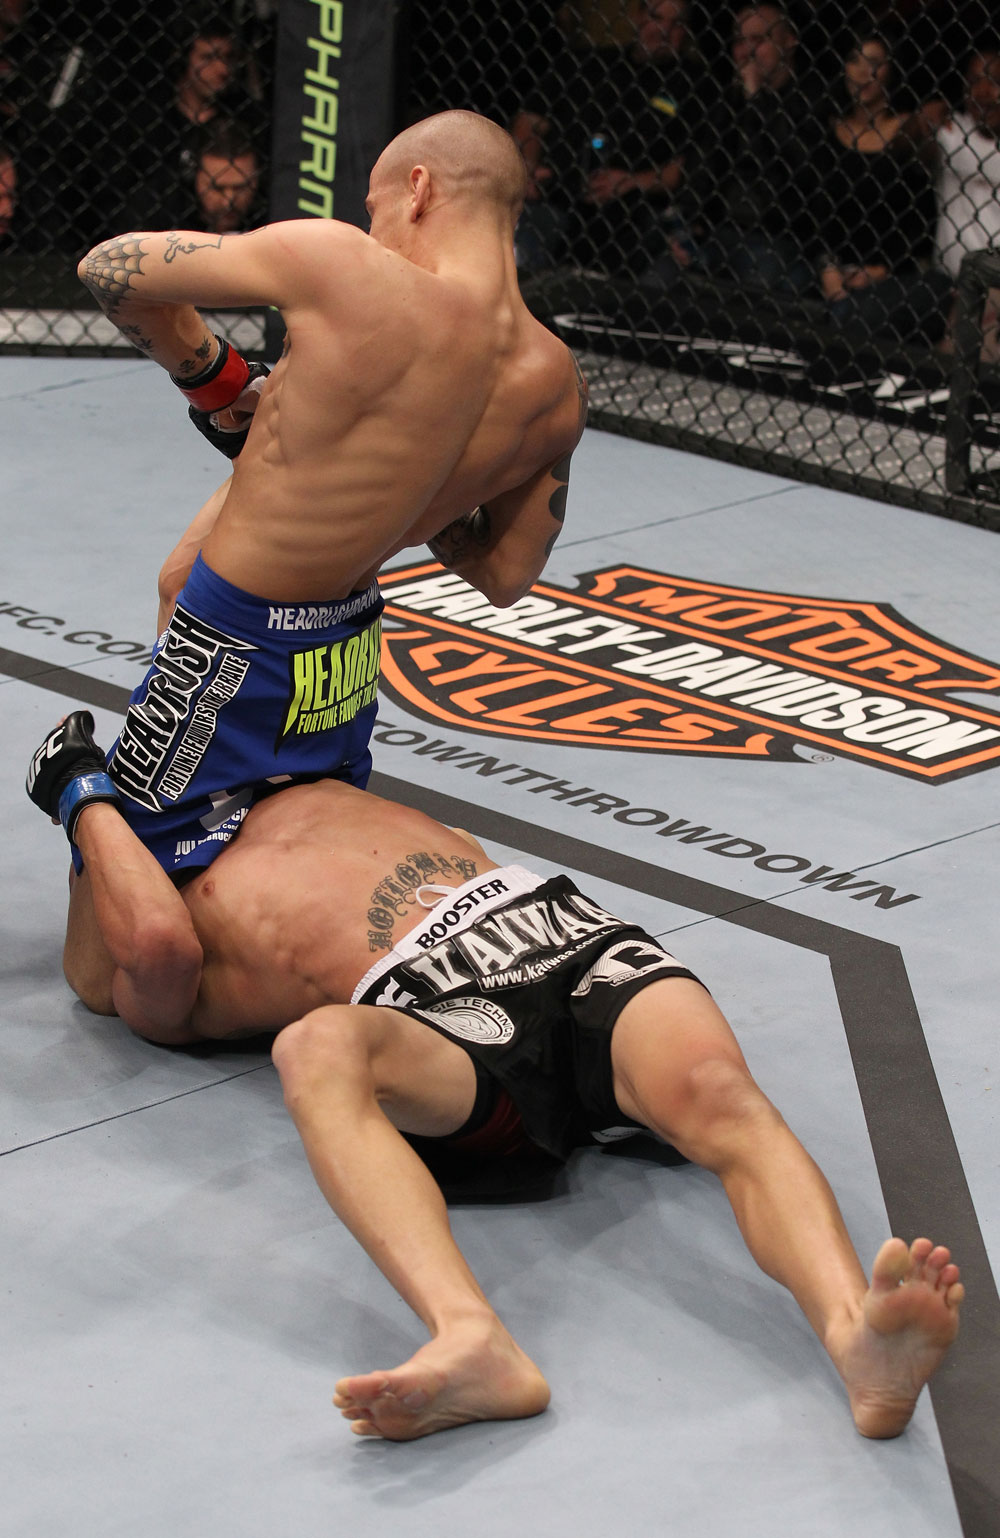 LAS VEGAS, NV - FEBRUARY 04:  Dustin Poirier (blue shorts) attempts to submit Max Holloway during the UFC 143 event at Mandalay Bay Events Center on February 4, 2012 in Las Vegas, Nevada.  (Photo by Nick Laham/Zuffa LLC/Zuffa LLC via Getty Images) *** Local Caption *** Dustin Poirier